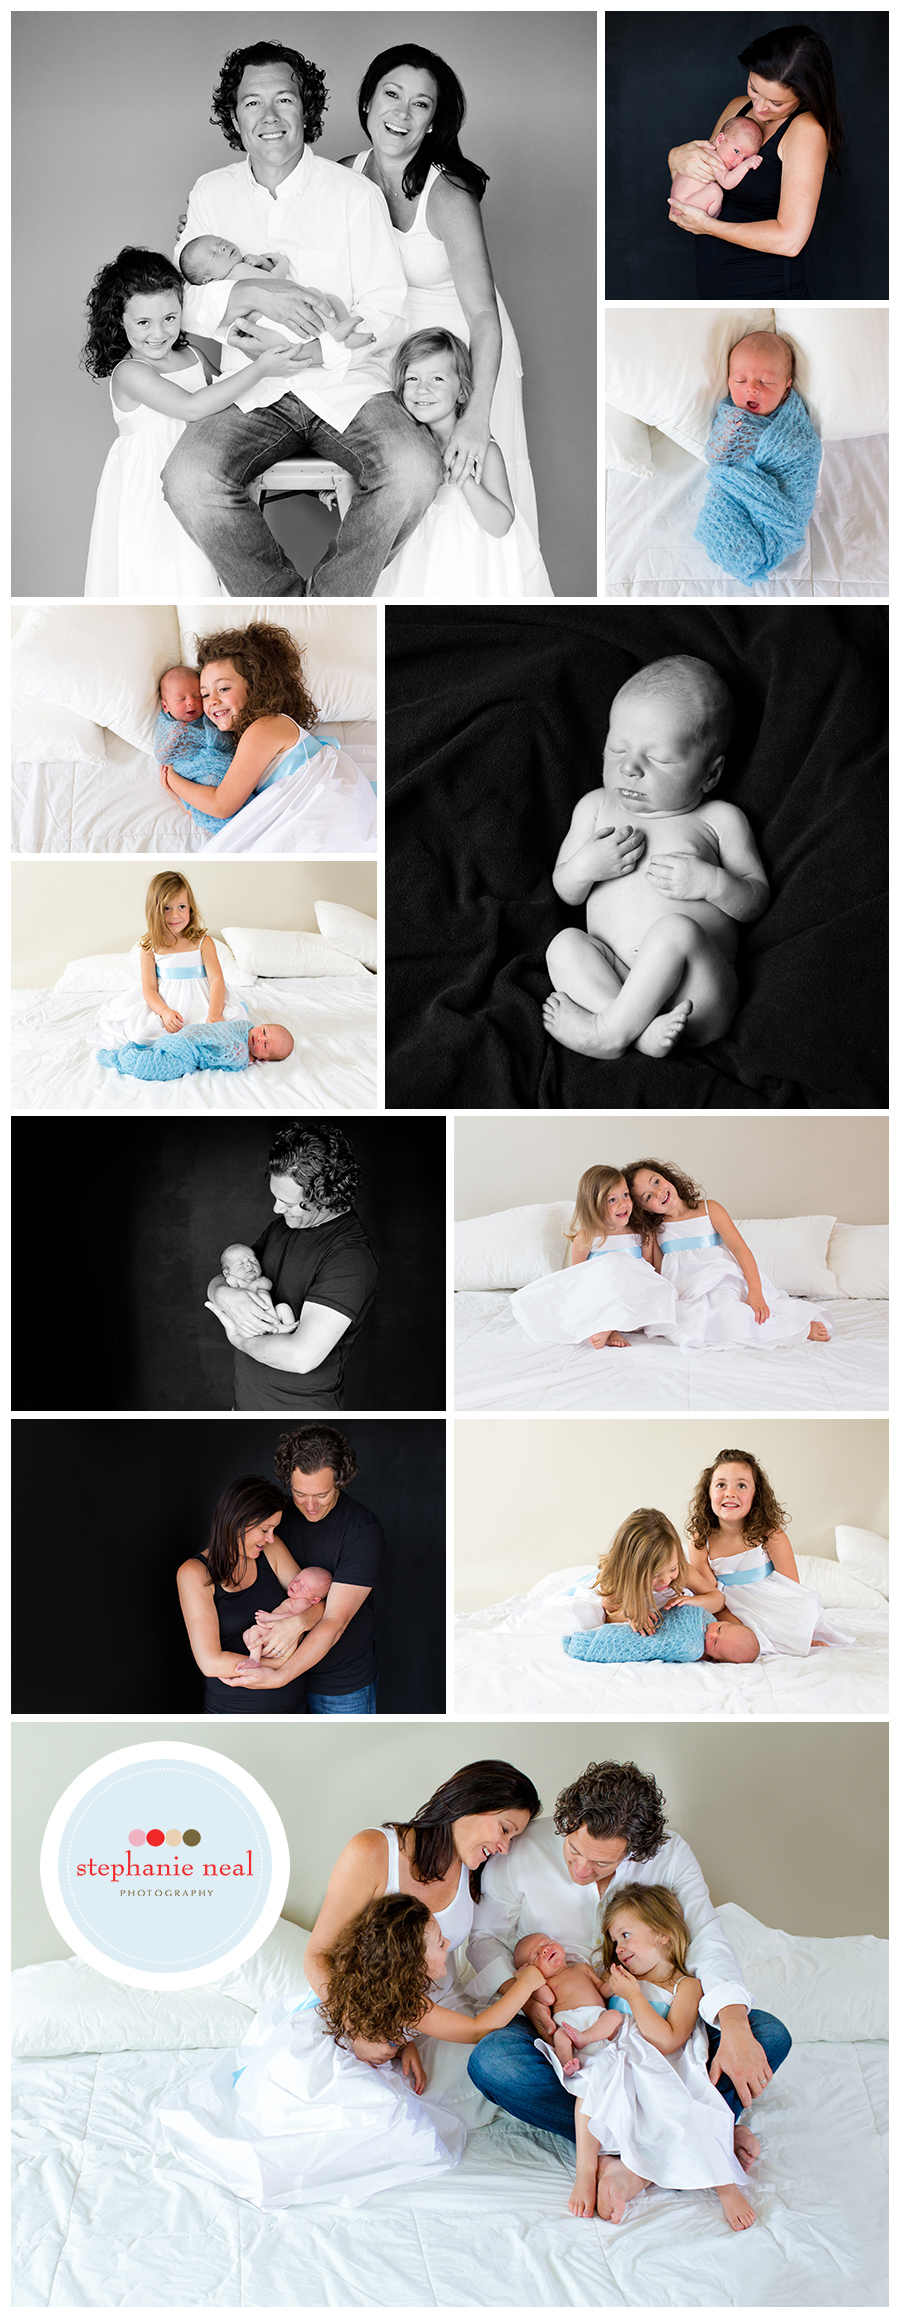 Park City, Heber, Midway Family Newborn Portrait Photographer, Stephanie Neal Photography